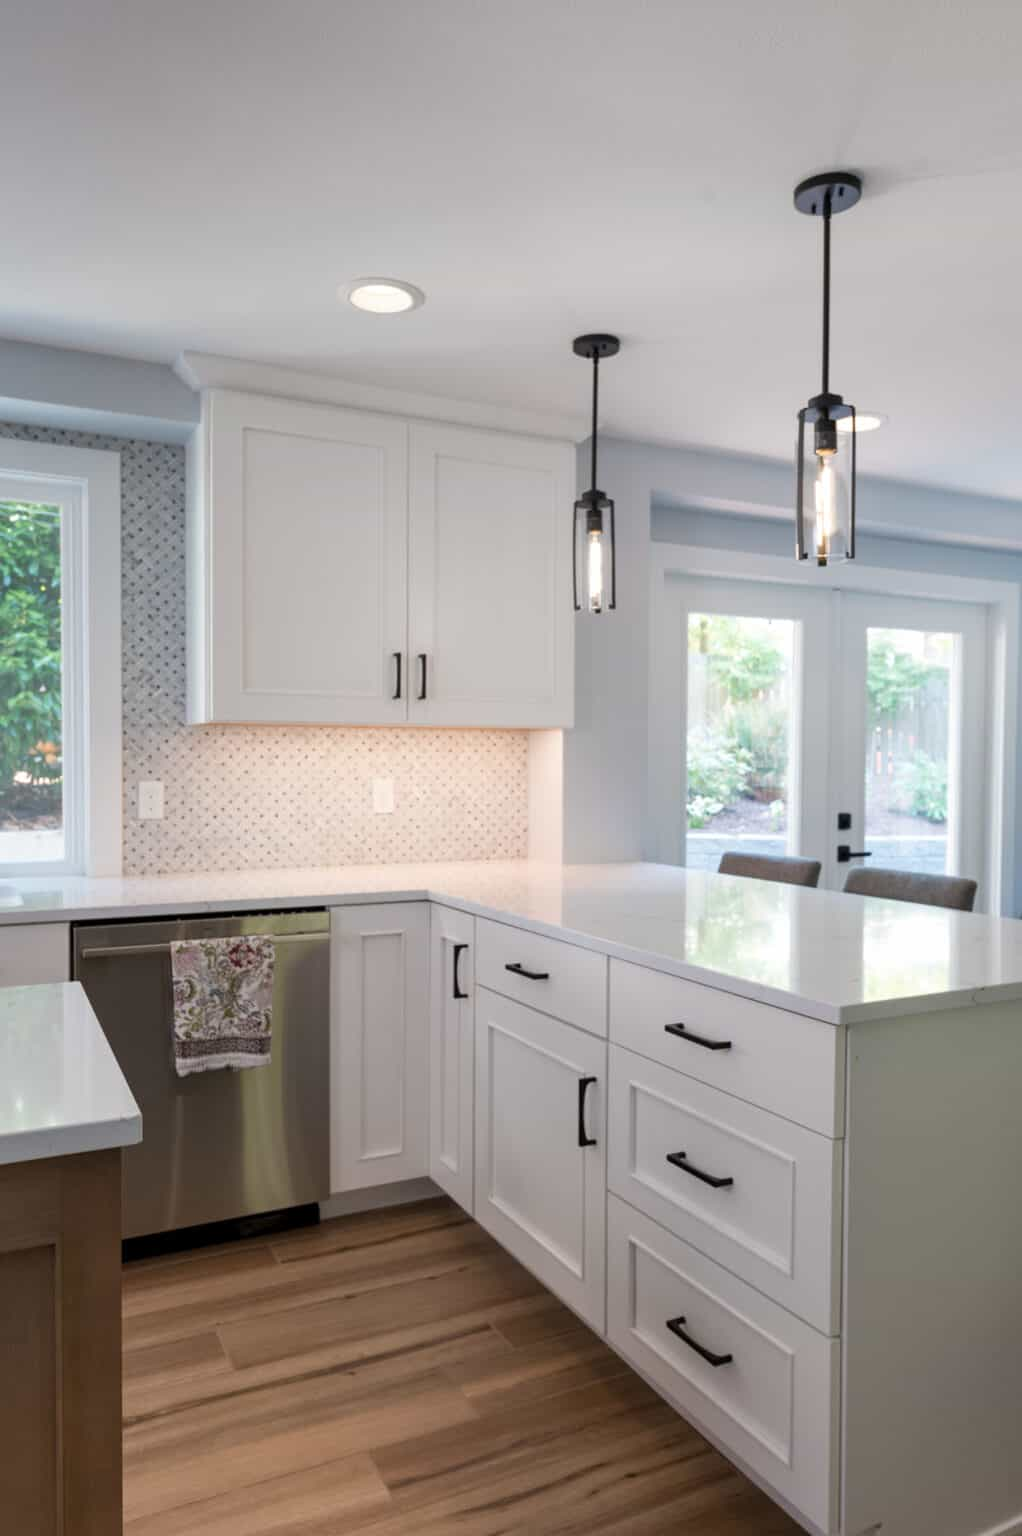 TWO TONED KITCHEN REMODEL 5